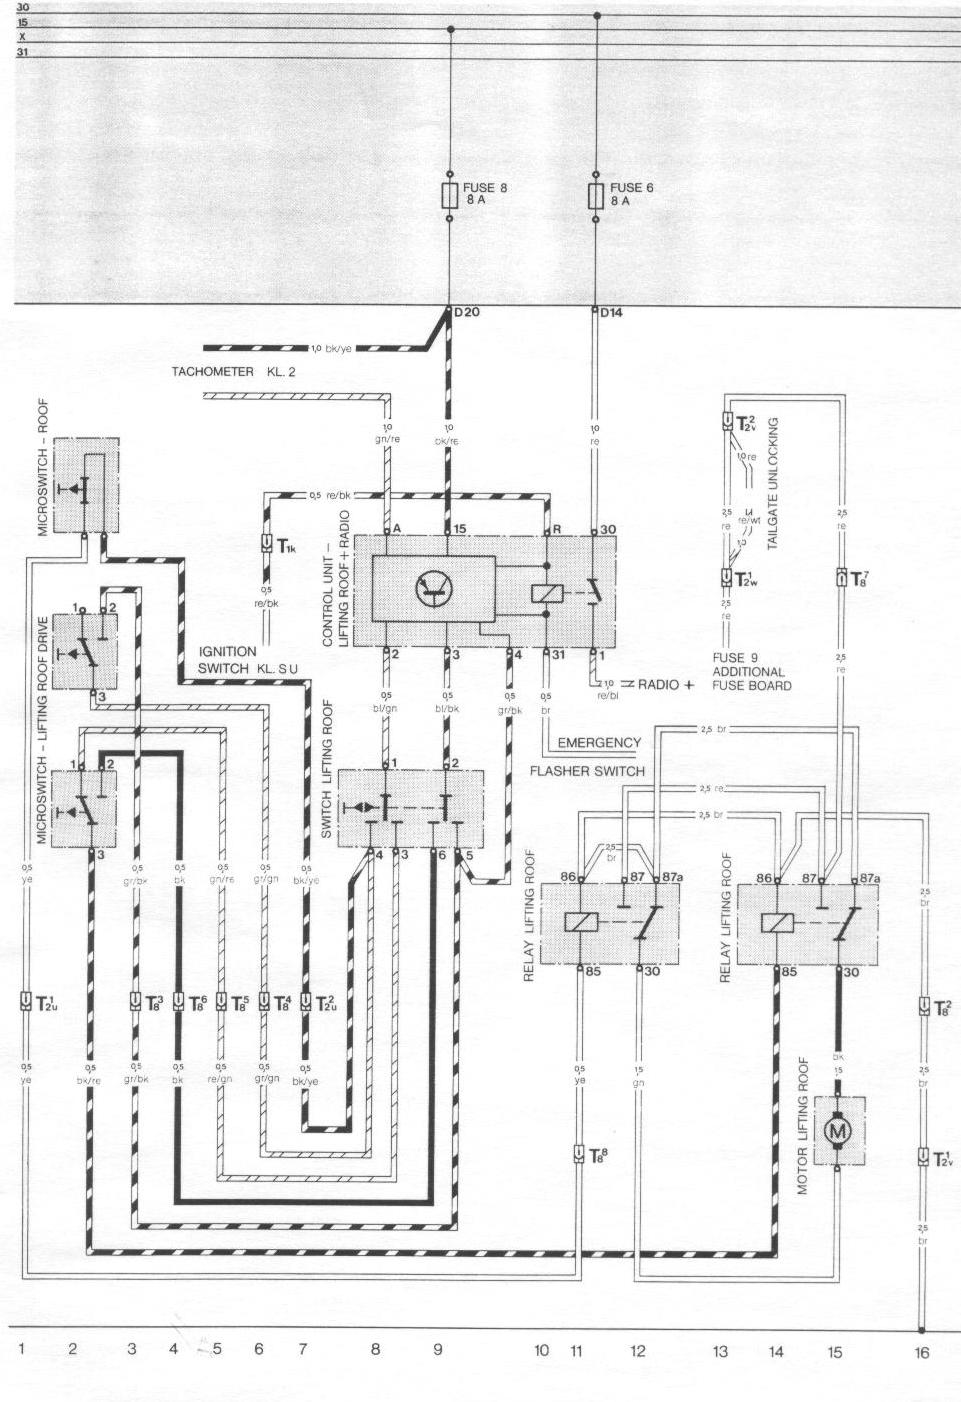 [DIAGRAM_38YU]  Pelican Parts: Porsche 924/944 Electrical Diagrams | Wiring Window Diagram Switch 944 86 Porsche |  | Pelican Parts